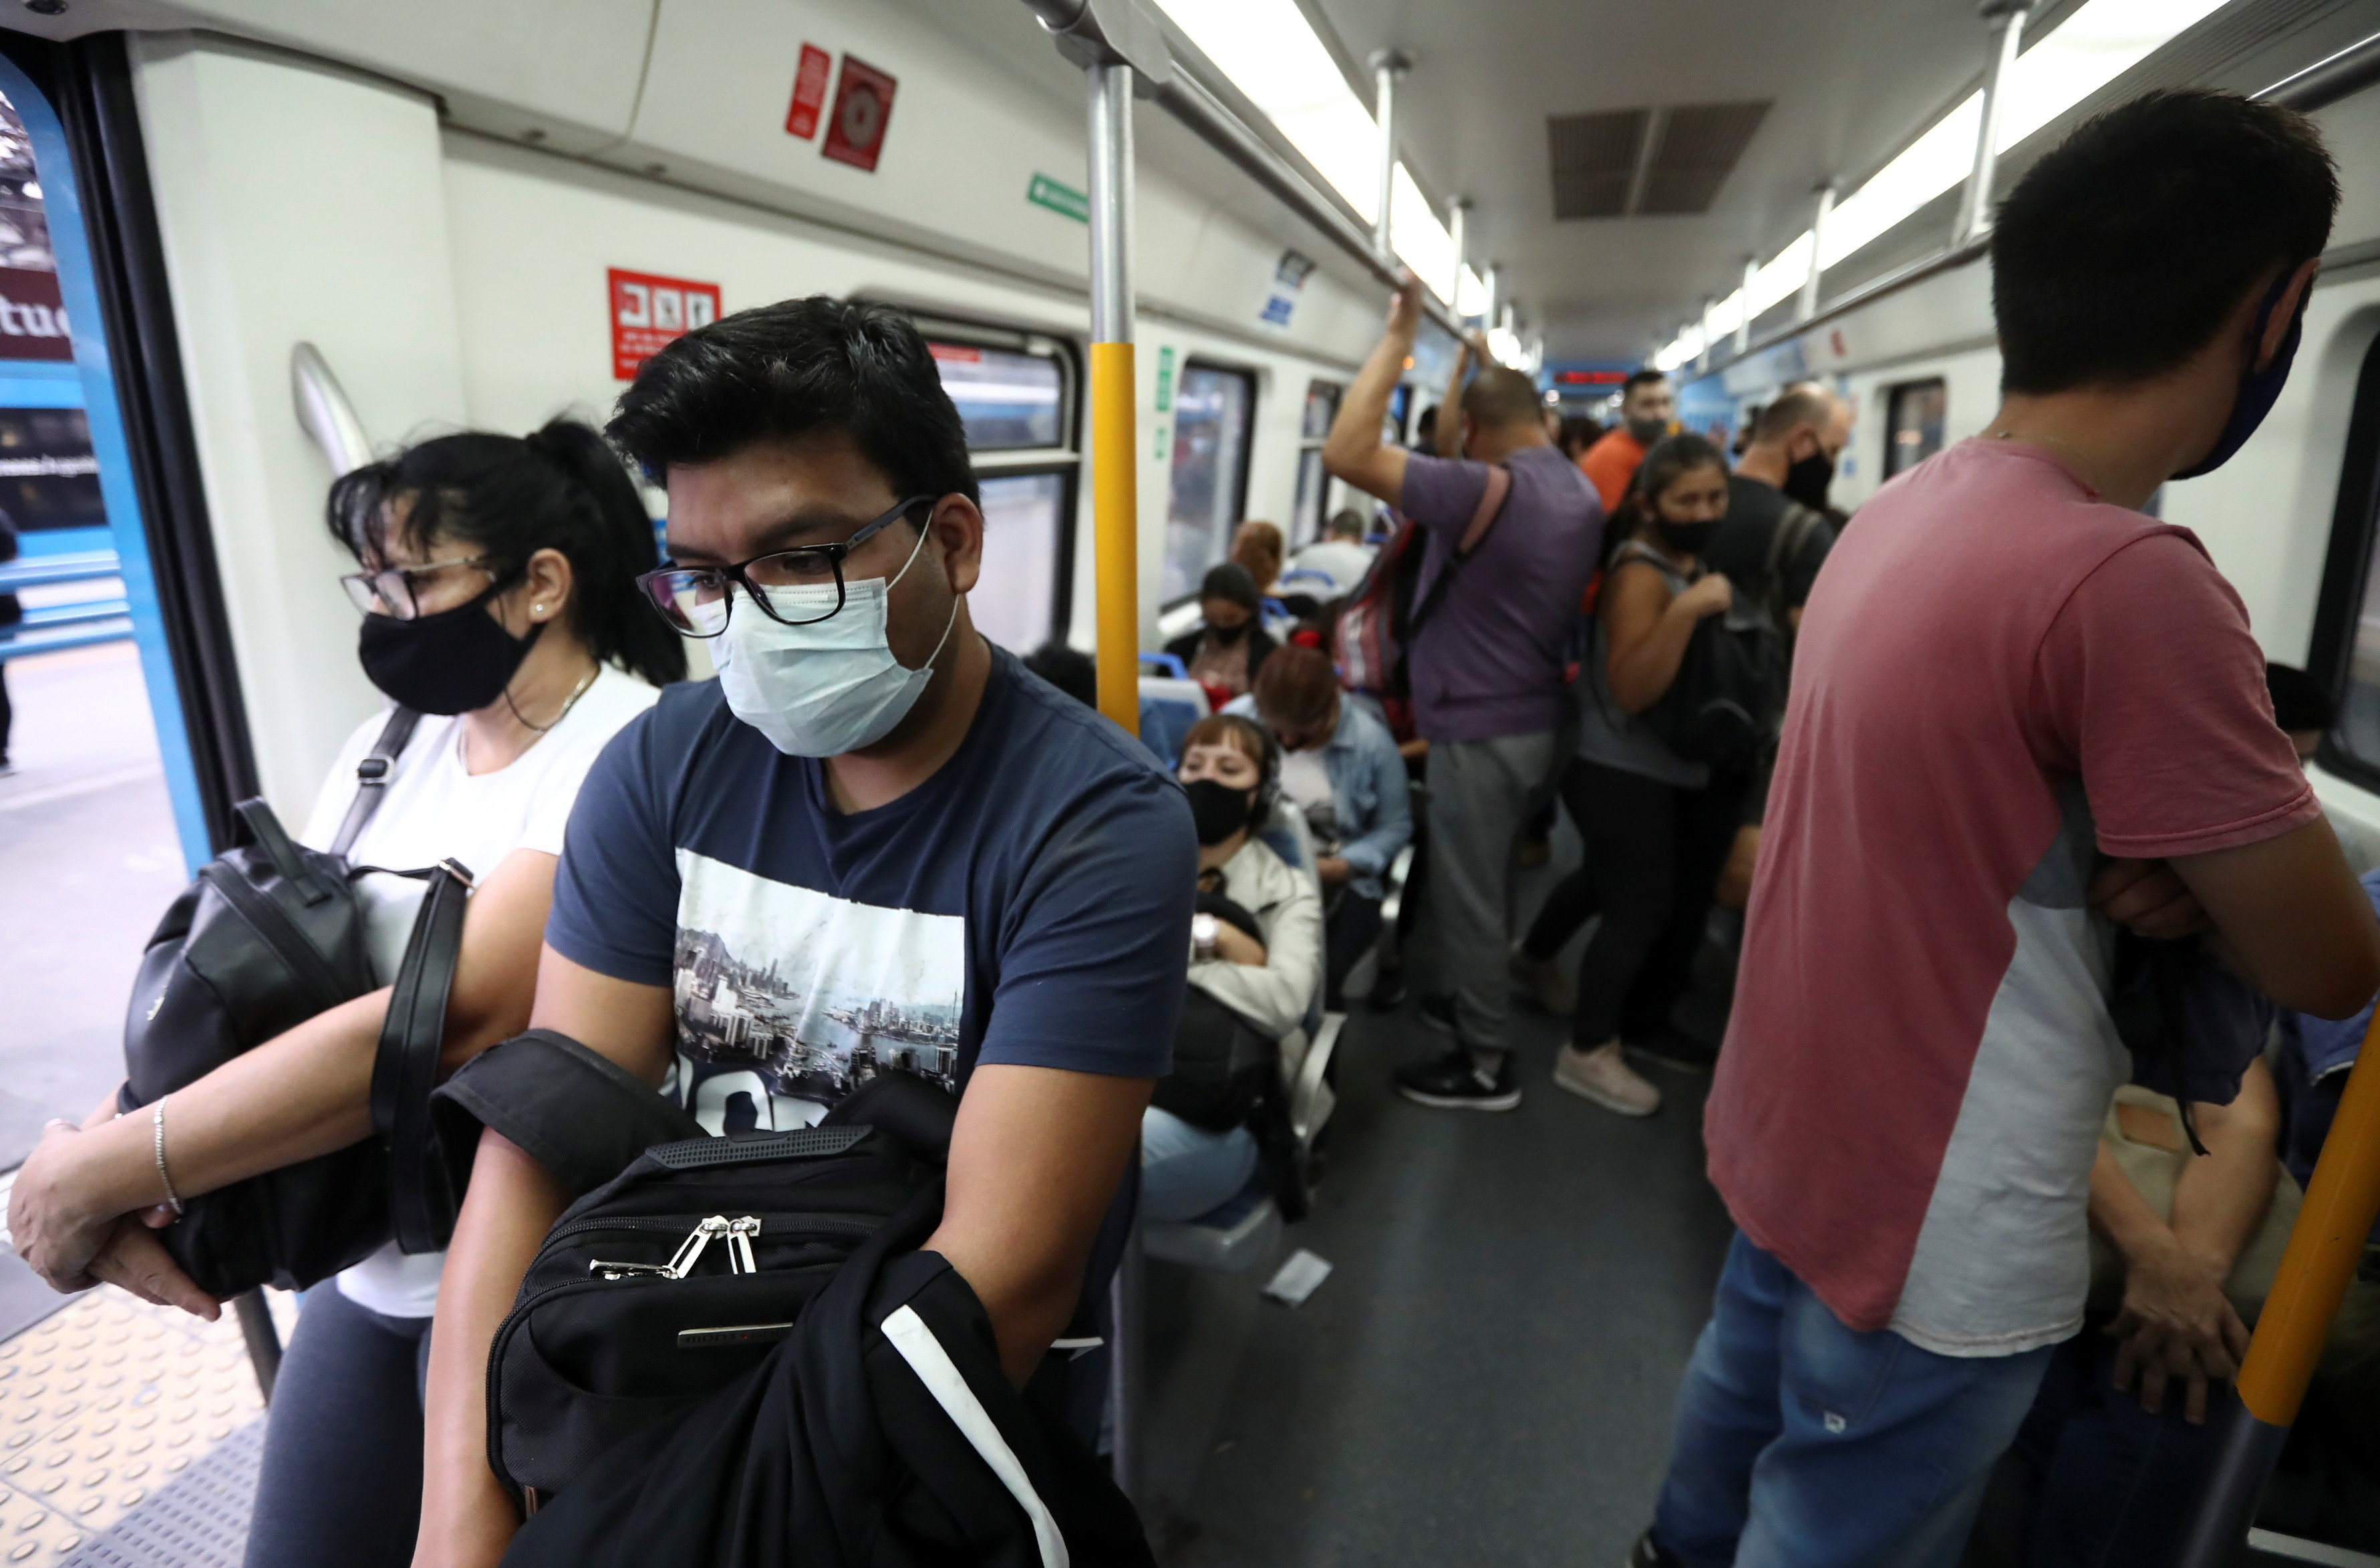 Passengers wearing face masks are seen inside a train at Constitucion train station, amid a rise in cases of the coronavirus disease (COVID-19), in Buenos Aires, Argentina April 8, 2021.